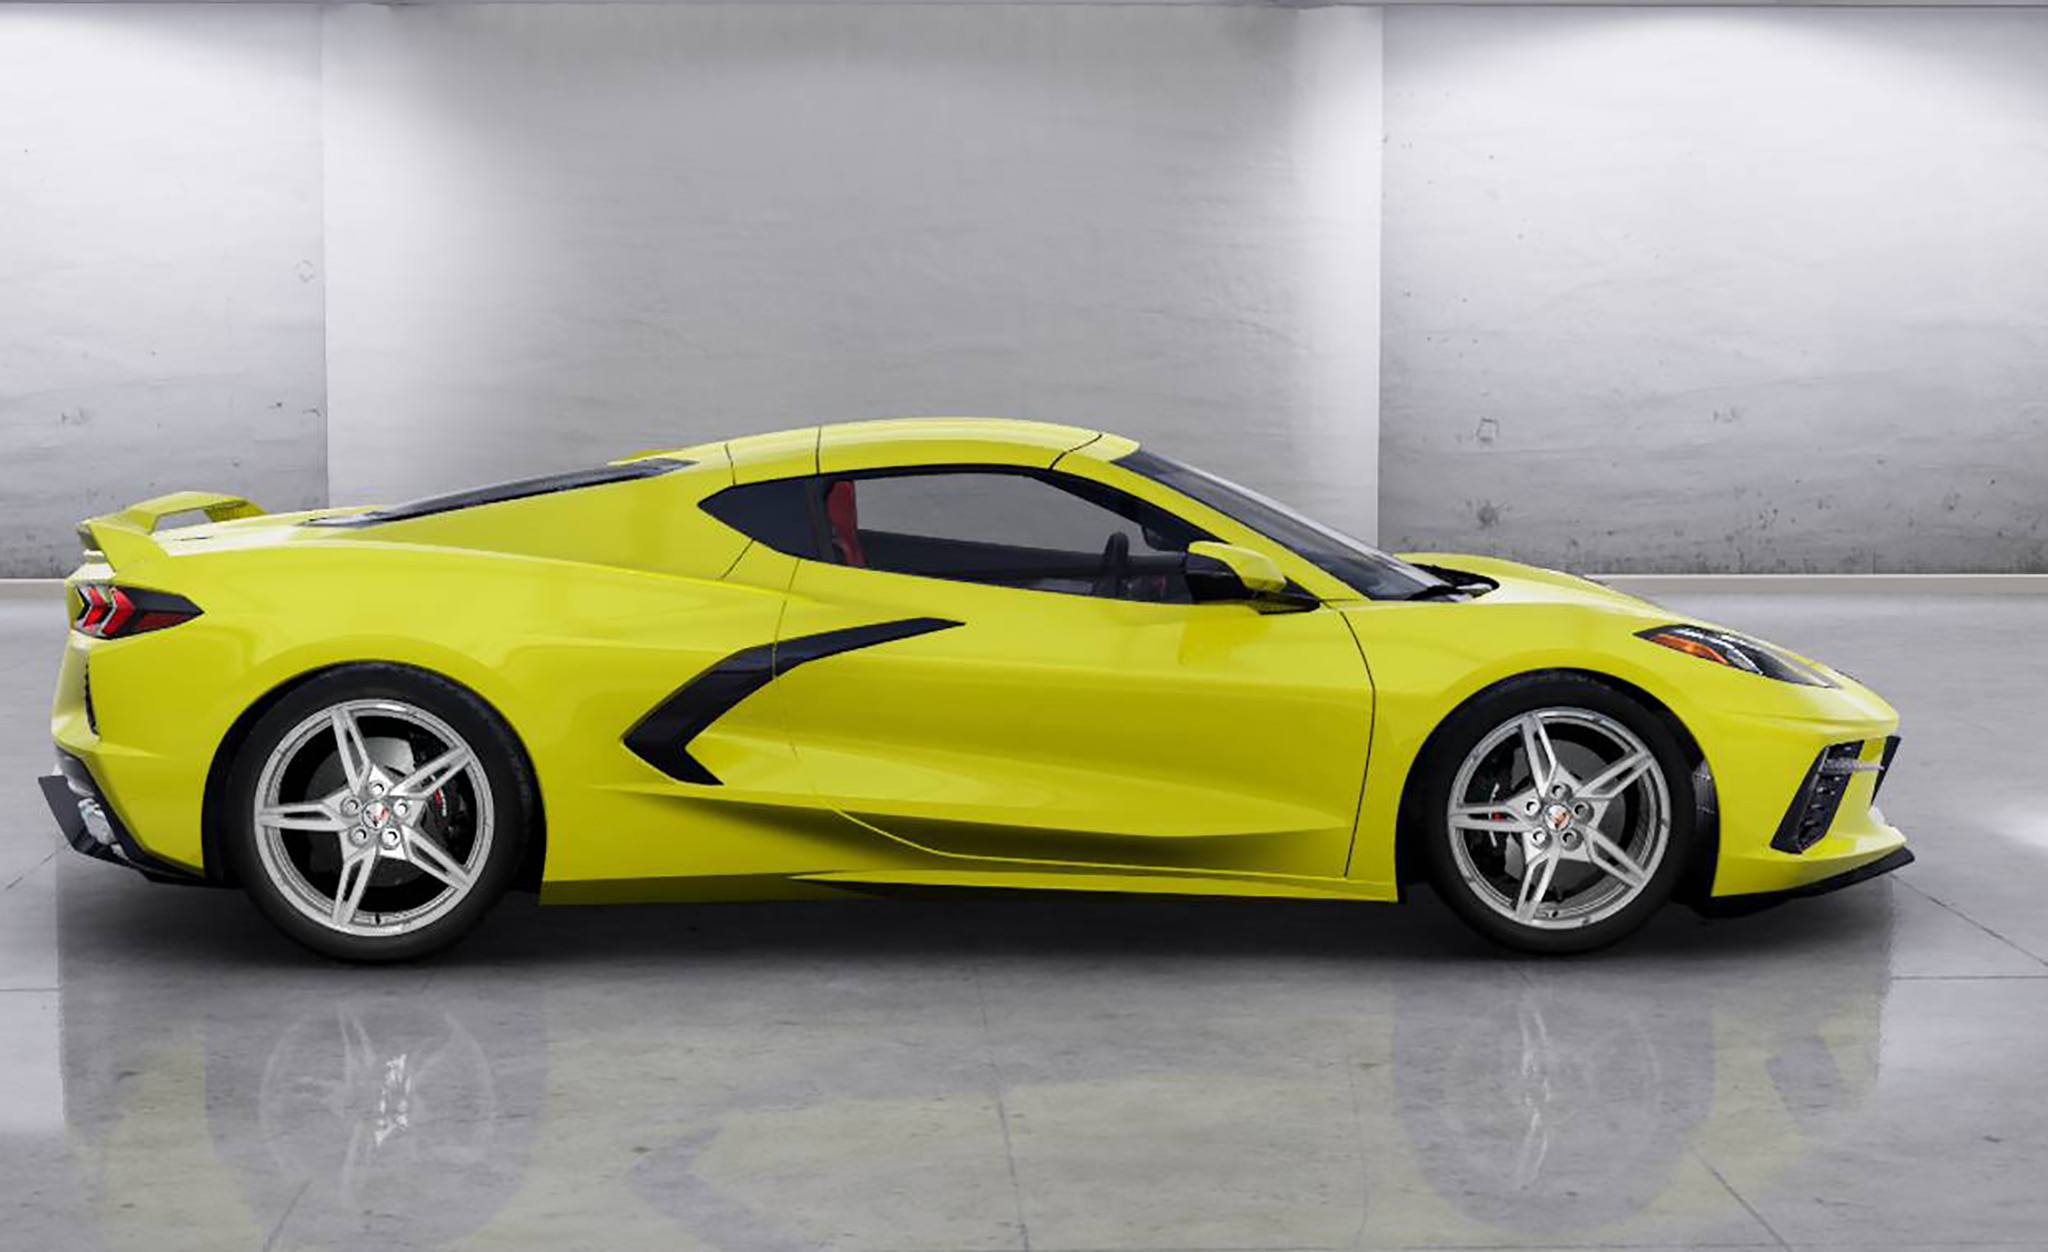 2020 C8 Chevrolet Corvette Stingray All The Colors